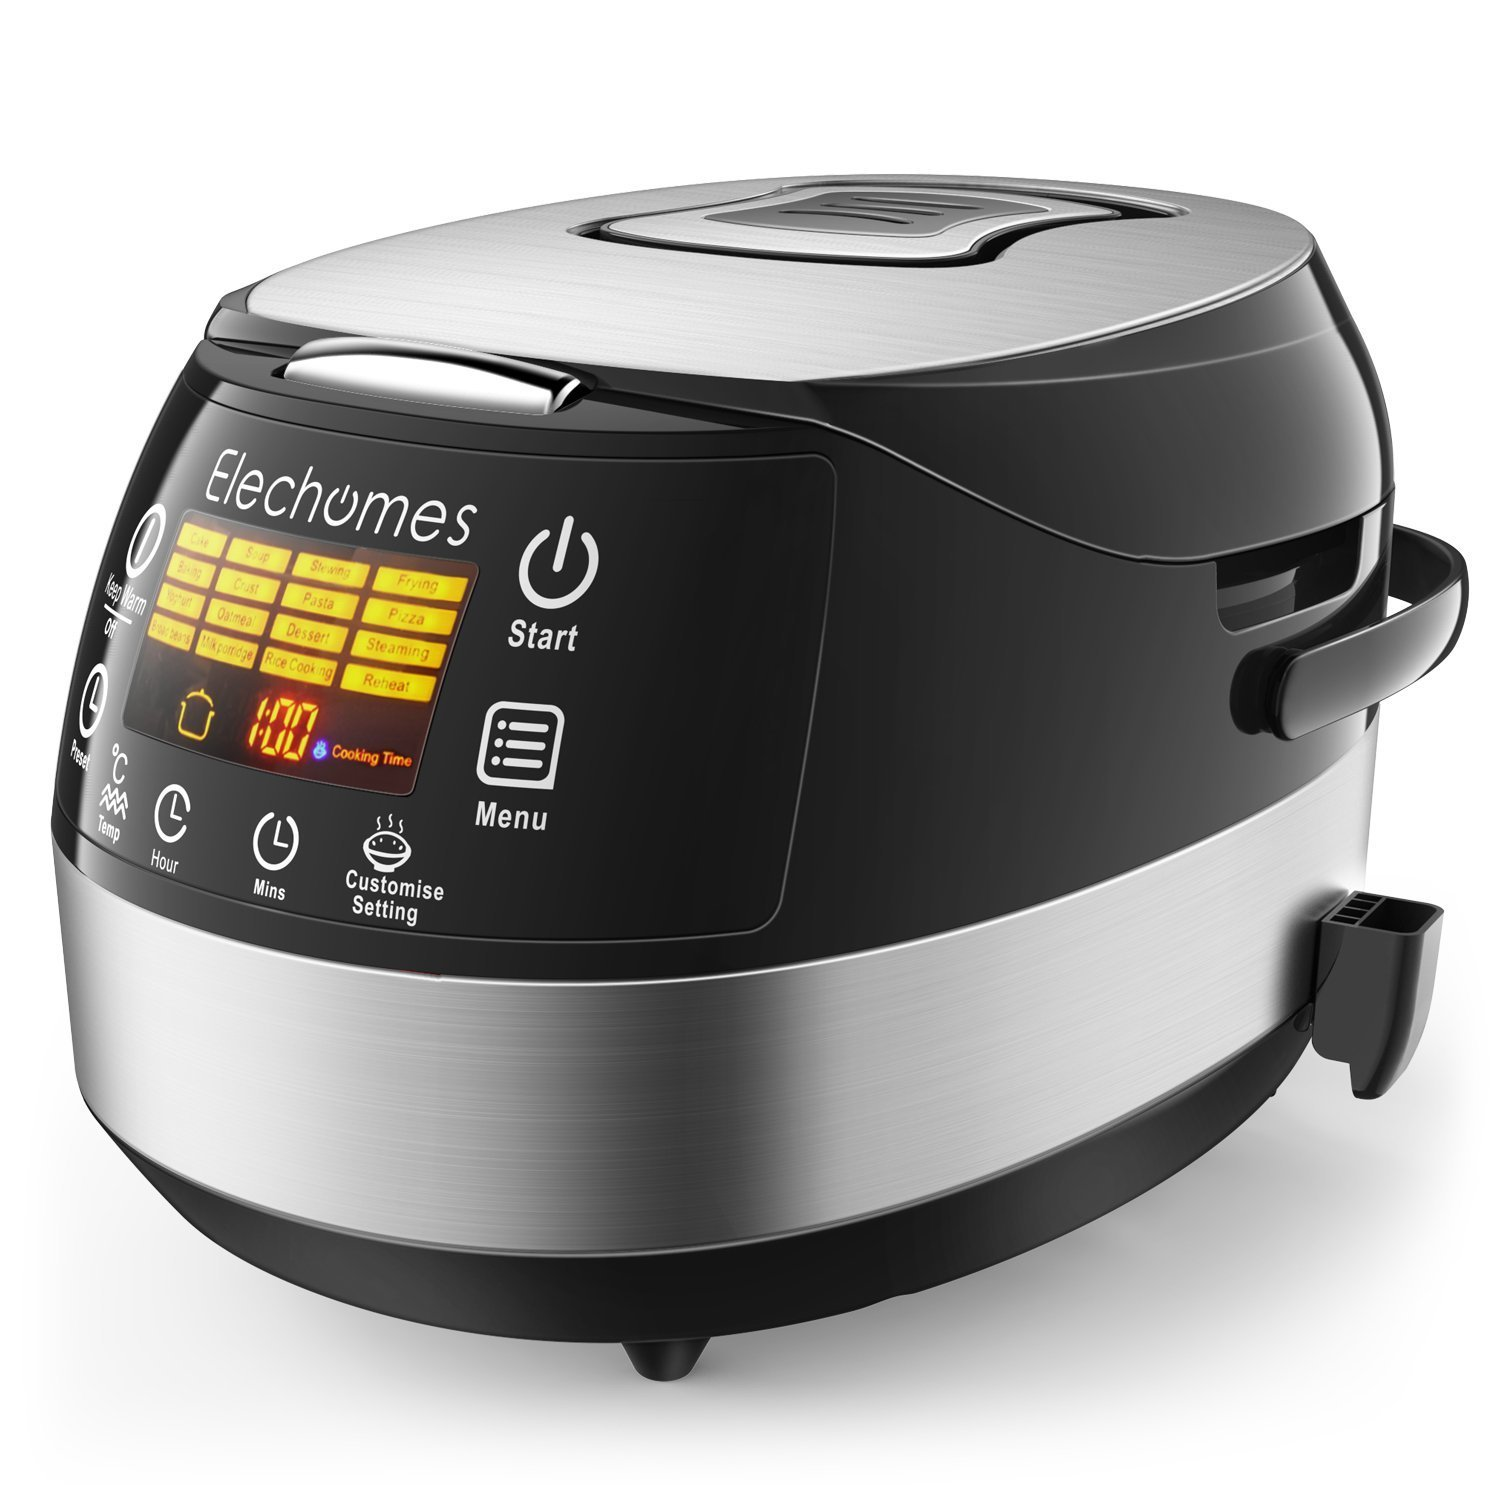 Elechomes LED Touch Control Rice Cooker, 16-in-1 Multi-function Cooker, 10-Cups Uncooked Warmer Cooker with Steam & Rinse Basket, CR502